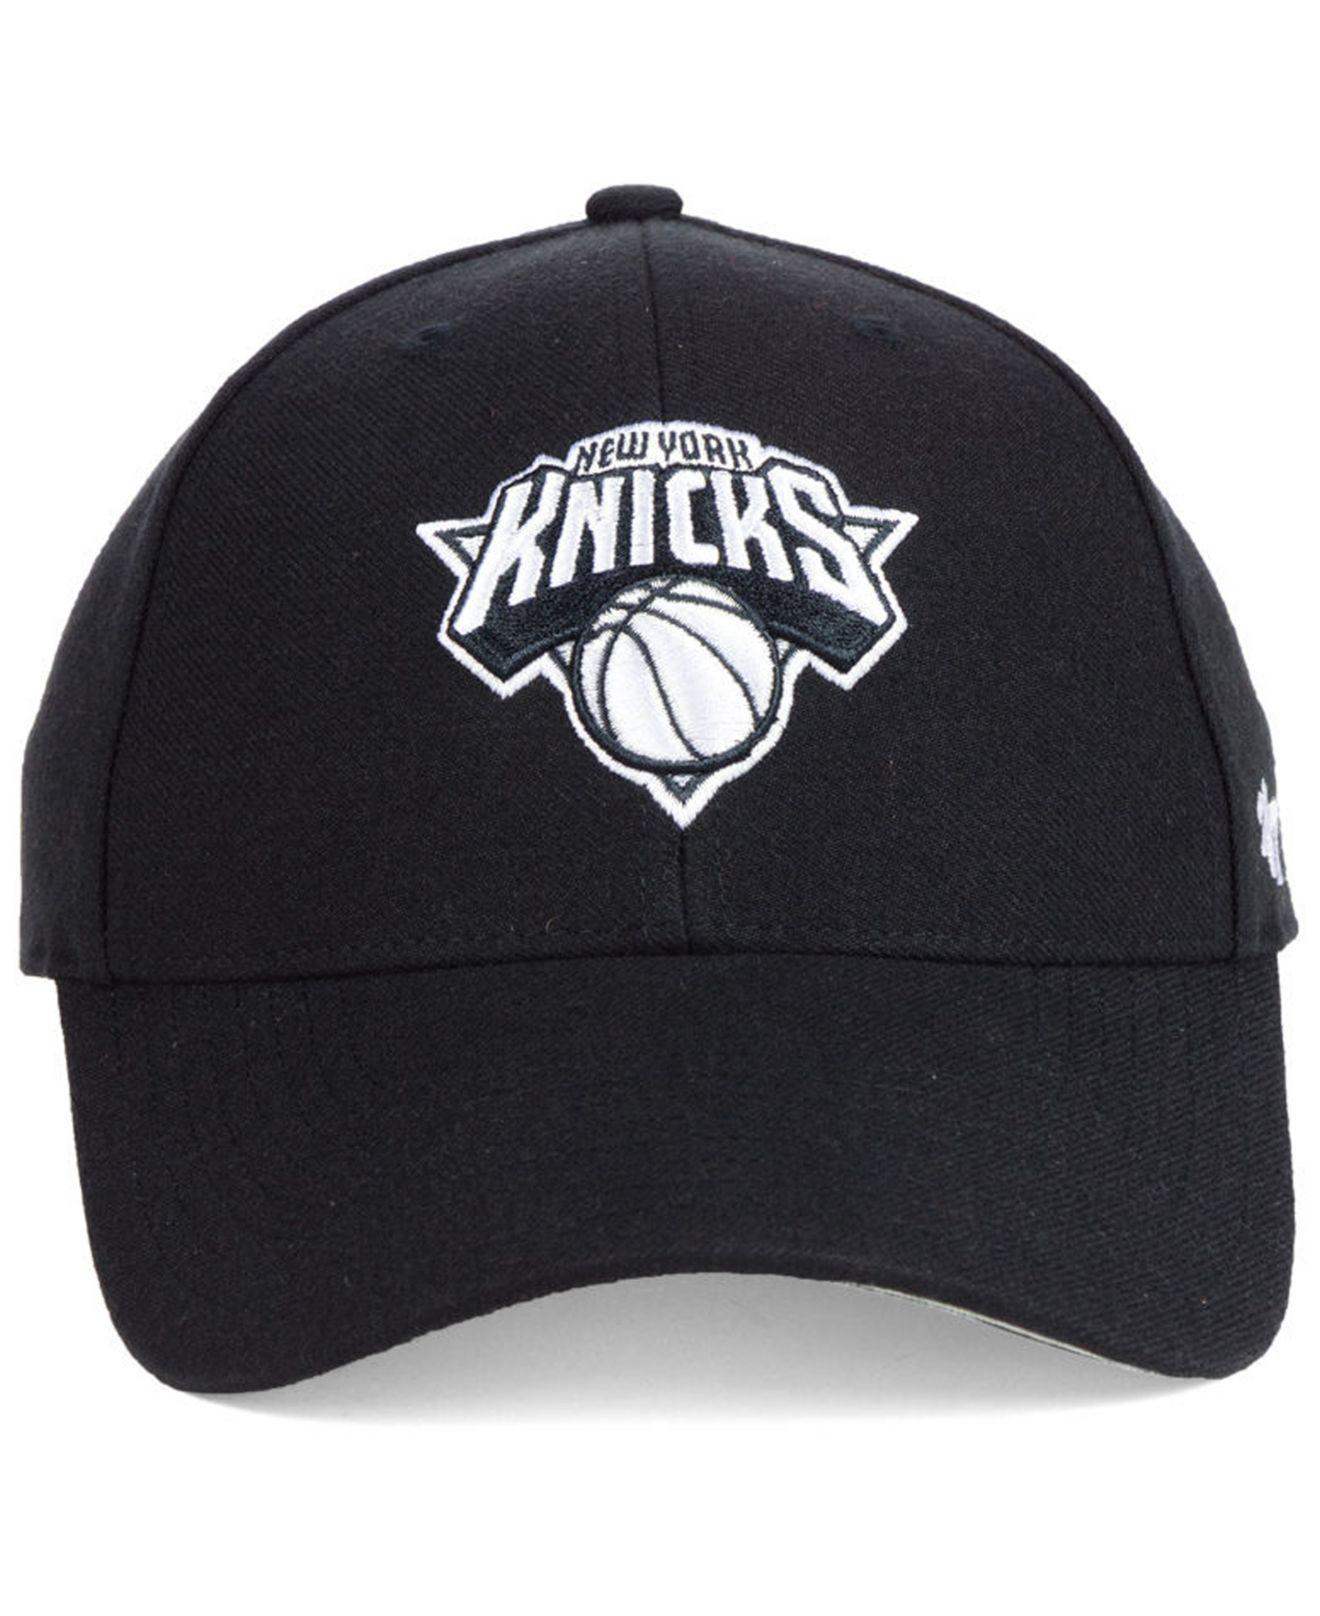 a63d464c12a Lyst - 47 Brand New York Knicks Black White Mvp Cap in Black for Men